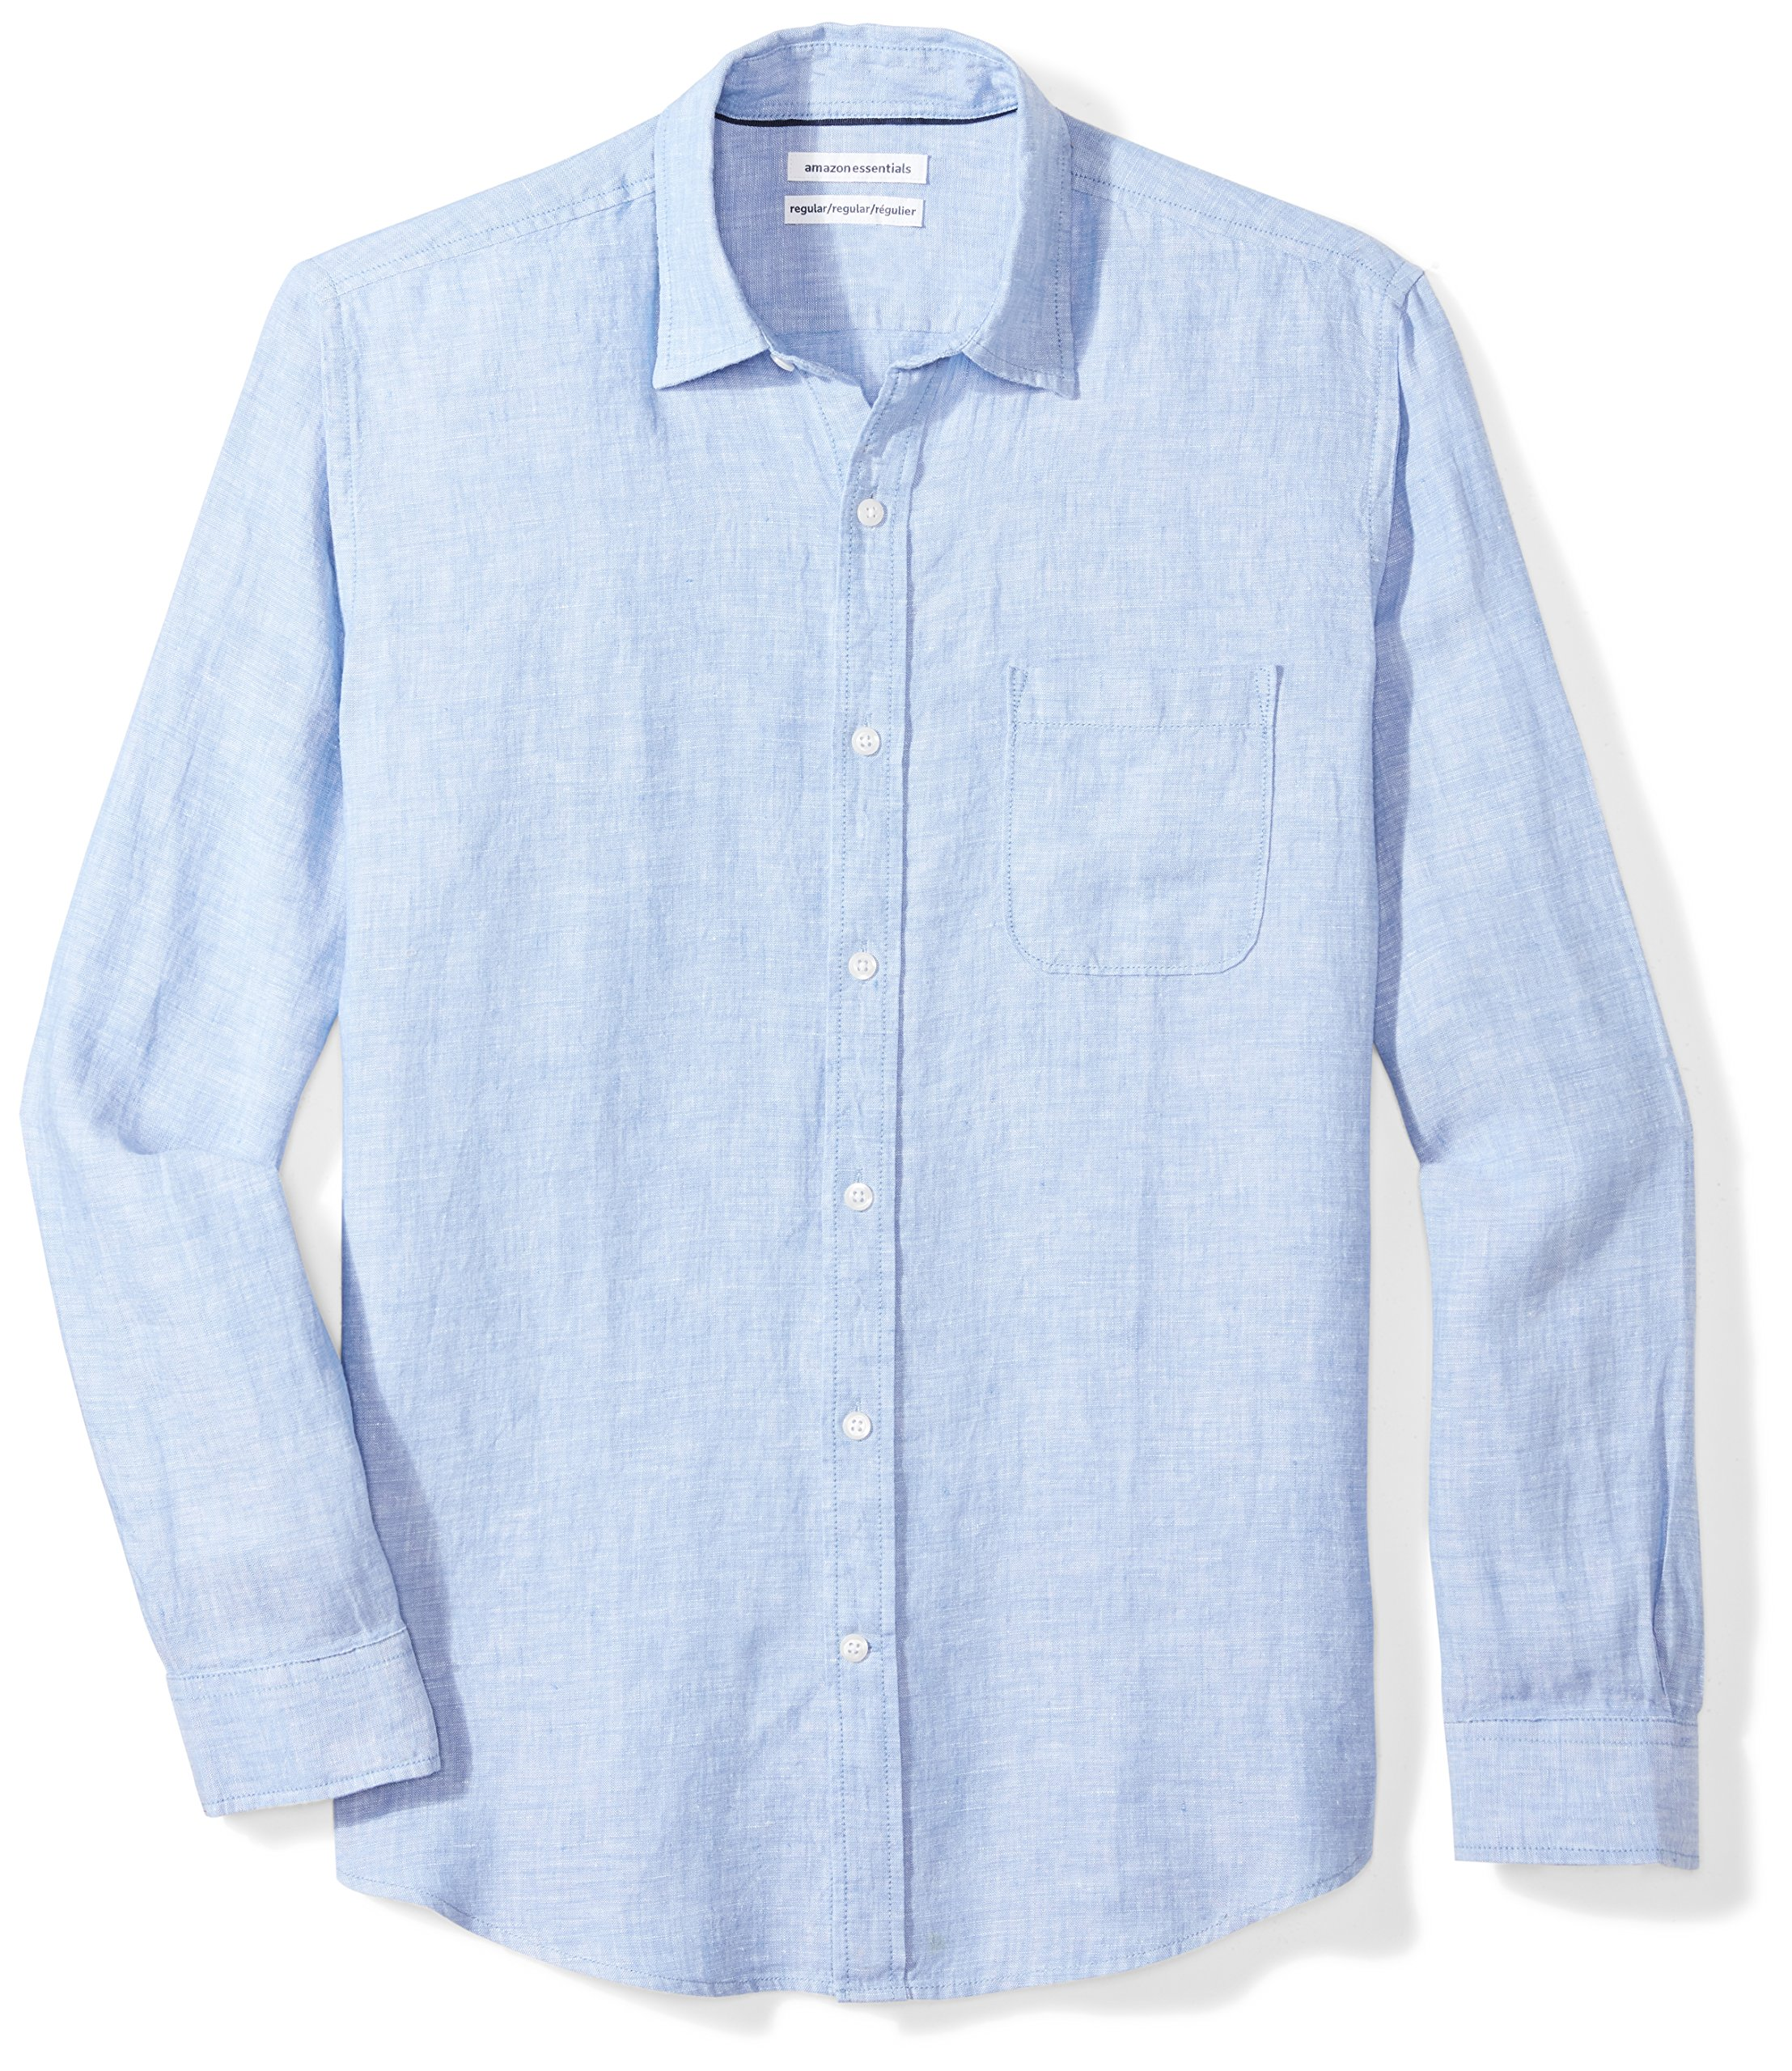 Amazon Essentials Men's Regular-Fit Long-Sleeve Linen Shirt, blue, X-Large